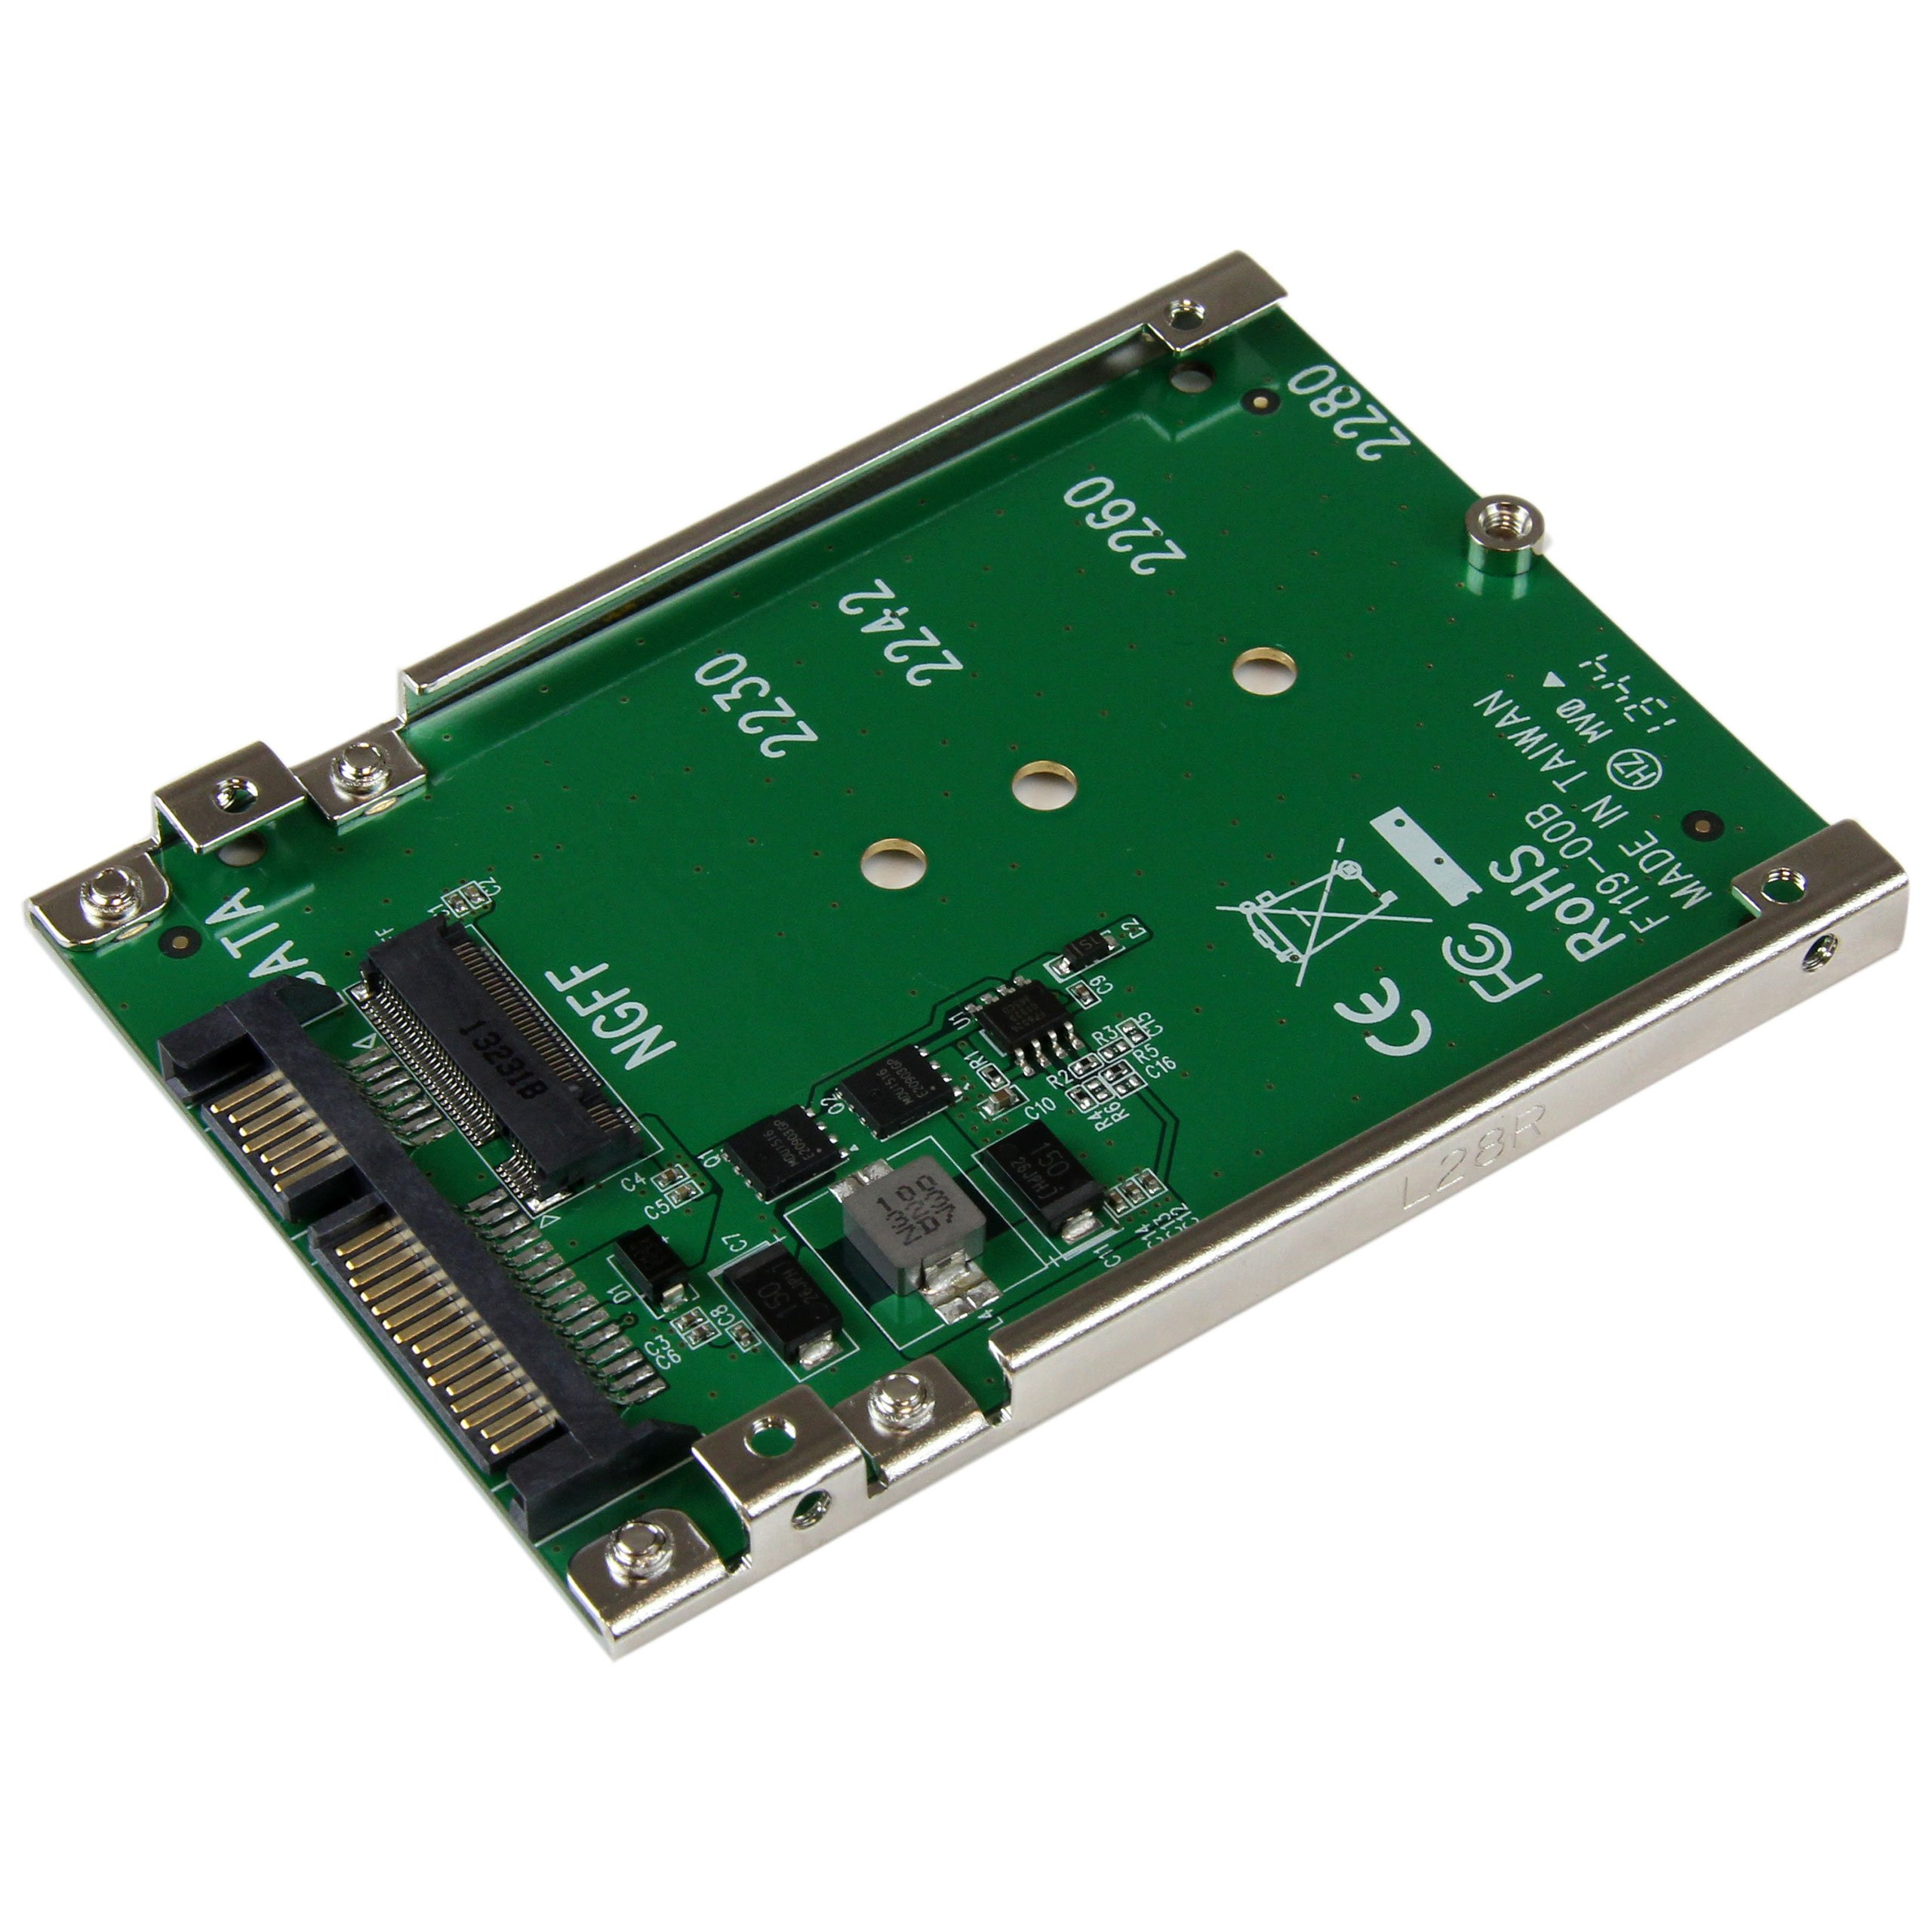 StarTech M.2 NGFF SSD to 2.5in SATA Adapter Converter (SAT32M225) by StarTech (Image #1)